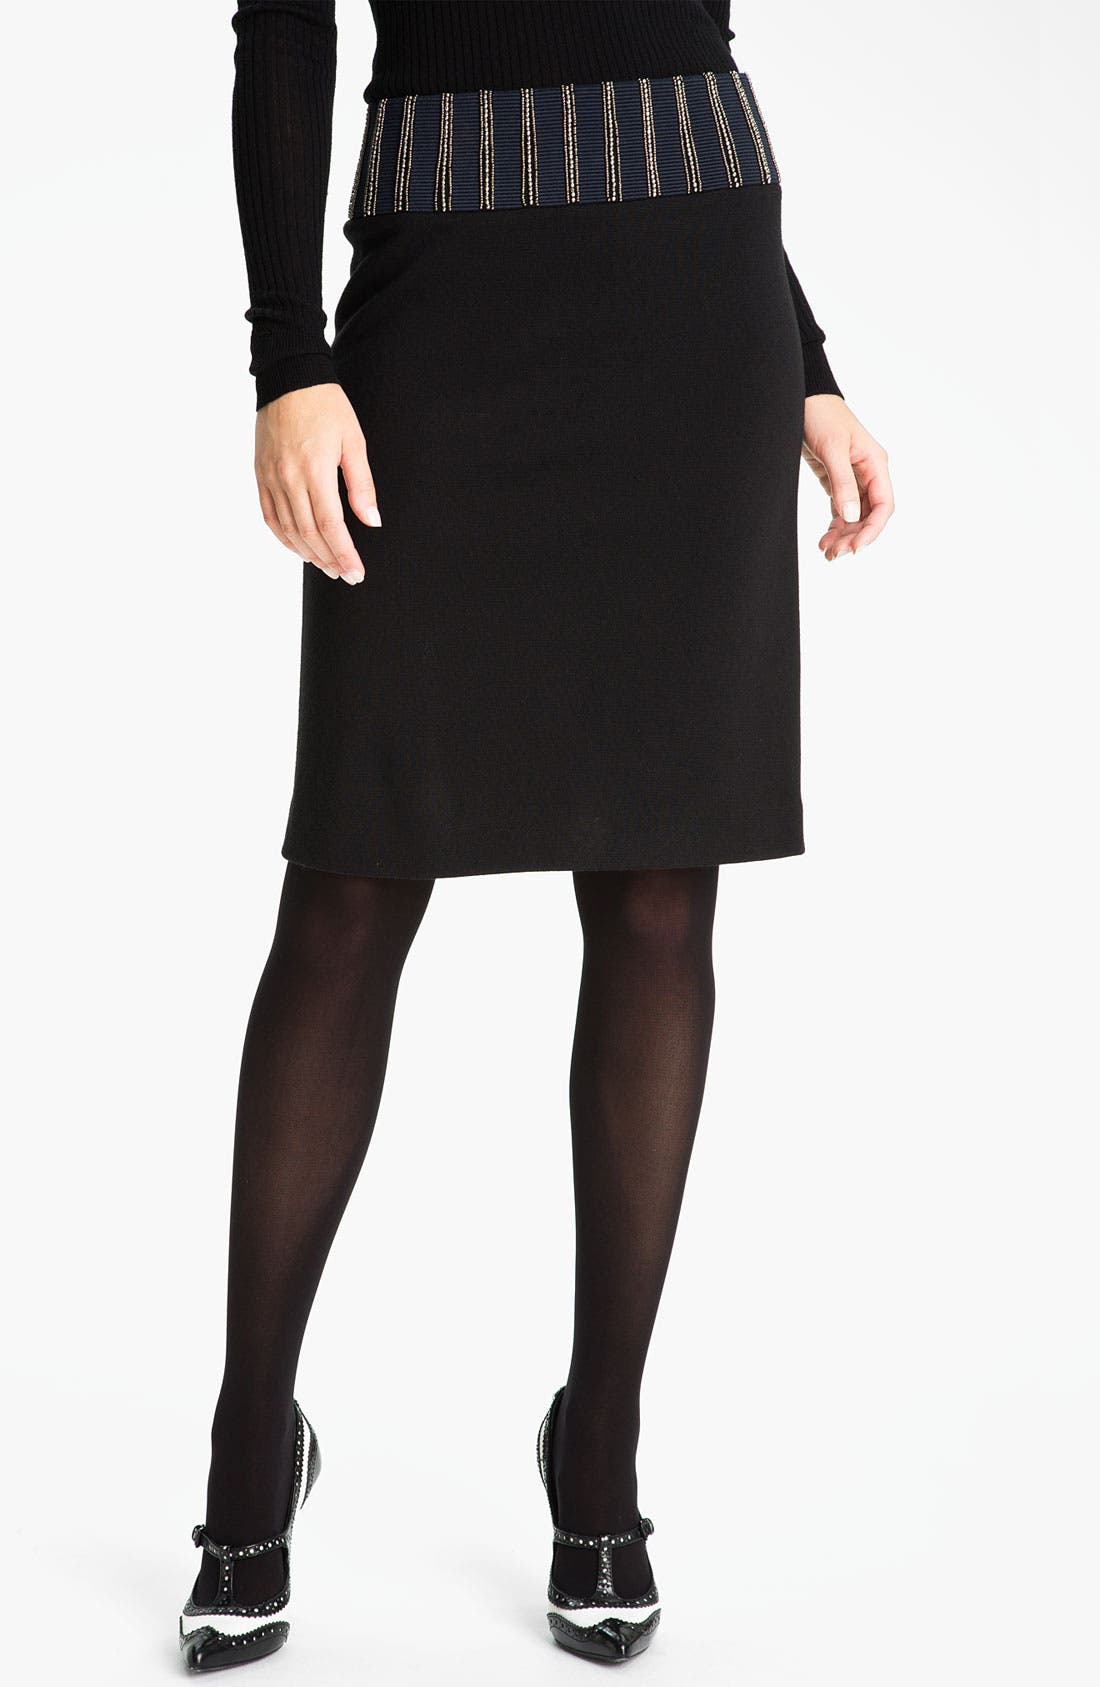 Alternate Image 1 Selected - Tory Burch 'Thalia' Pencil Skirt (Online Exclusive)